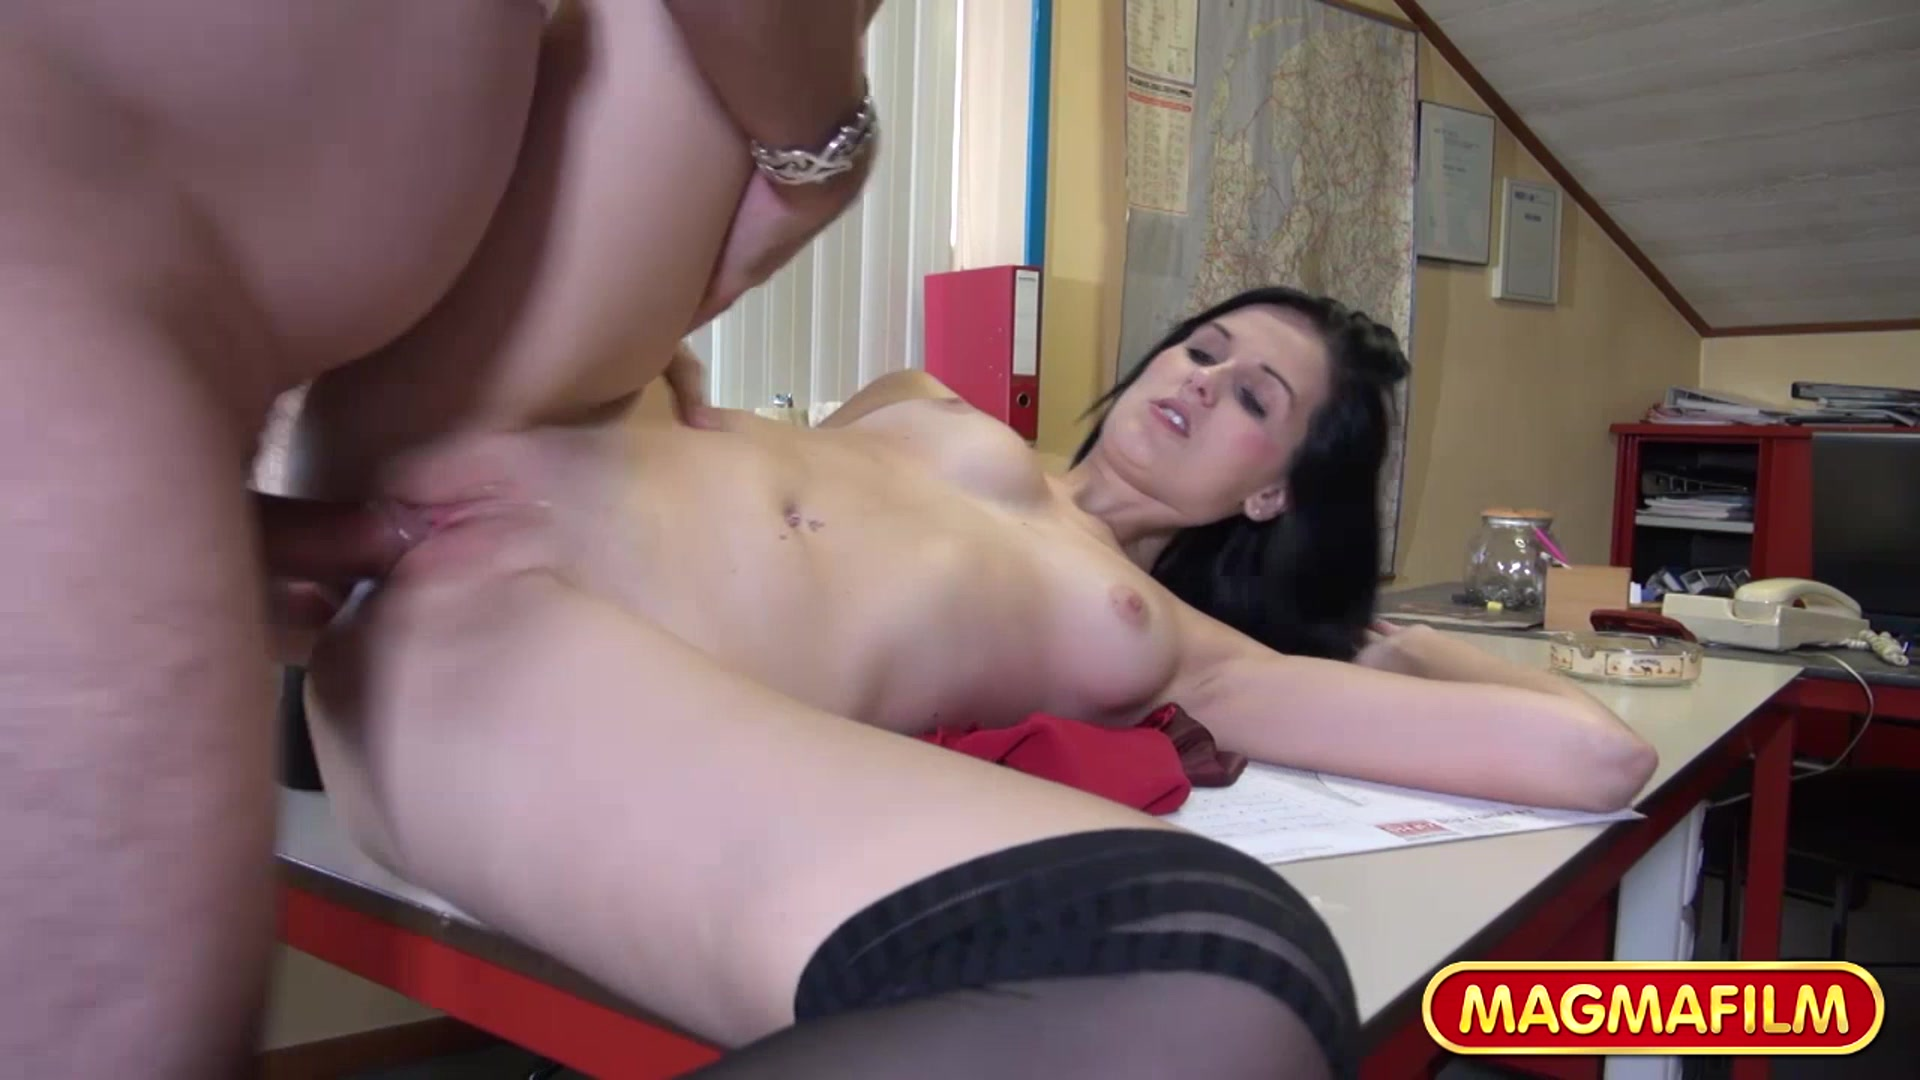 Skyblog misssexy XXX Video